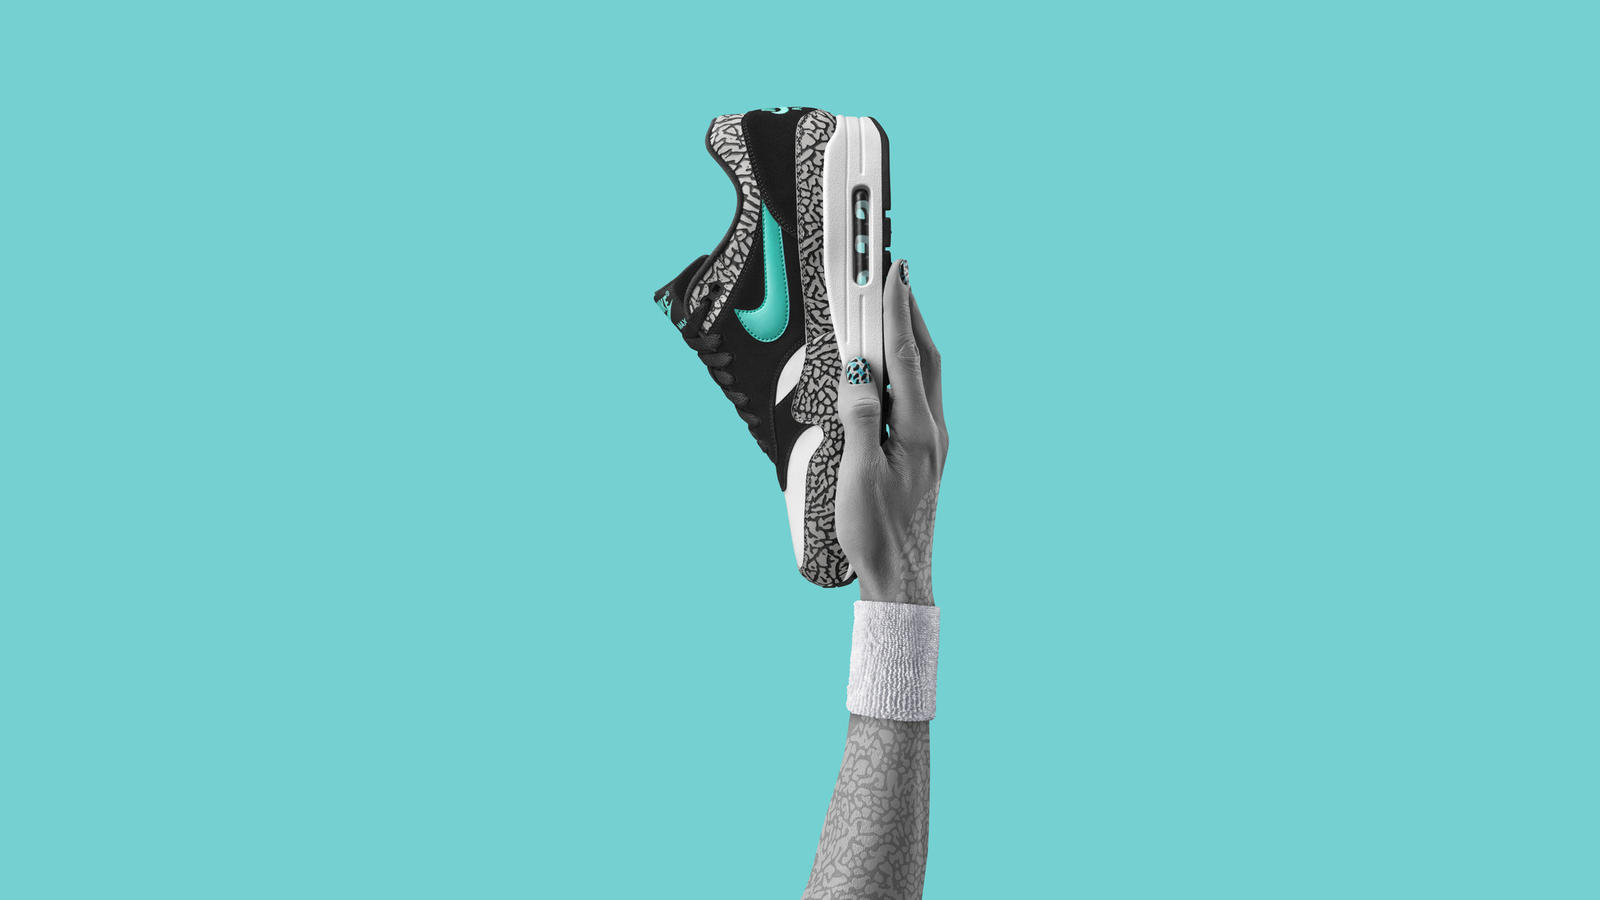 """The Air Max 1 atmos was the undisputed winner of the Air Max Day 2016 Vote Back campaign. The collaboration spliced a staple Nike motif with meticulous color blocking to highlight the subtle jade Swoosh. Co-created by famed Japanese retailer, Atmos, this sneaker was originally part of the """"Zoo Pack,"""" released in 2006."""